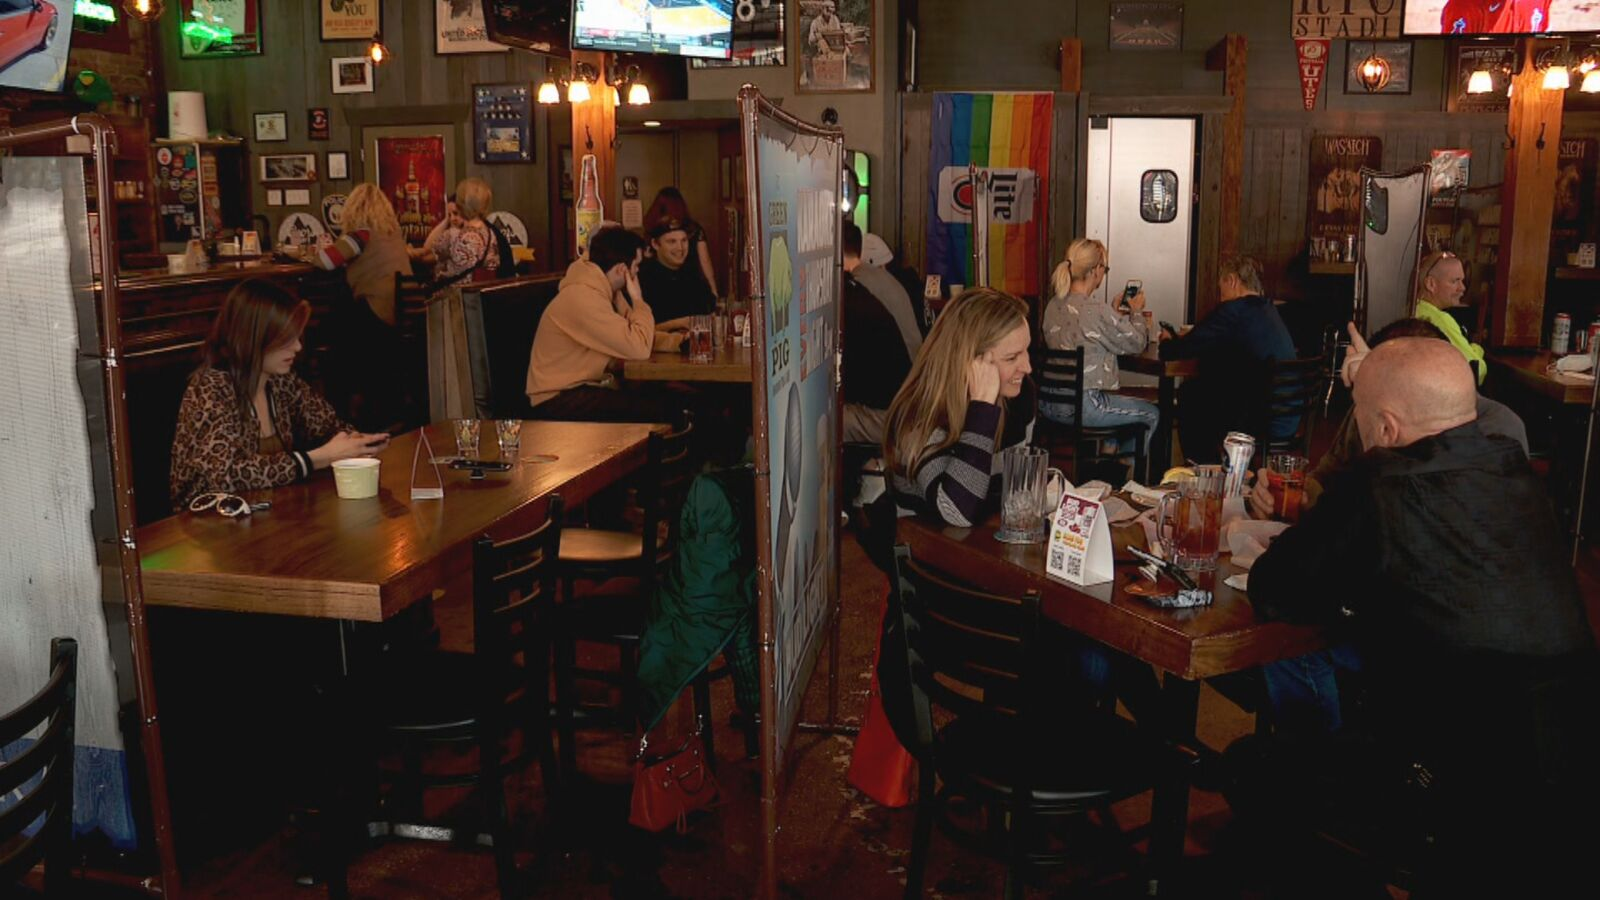 Six counties, including Davis and Salt Lake, were moved to the moderate transmission level Thursday. The change means the 6 feet of distance required at restaurants, venues, bars and gyms is, for the most part, now just a recommendation, not a requirement. (KUTV)